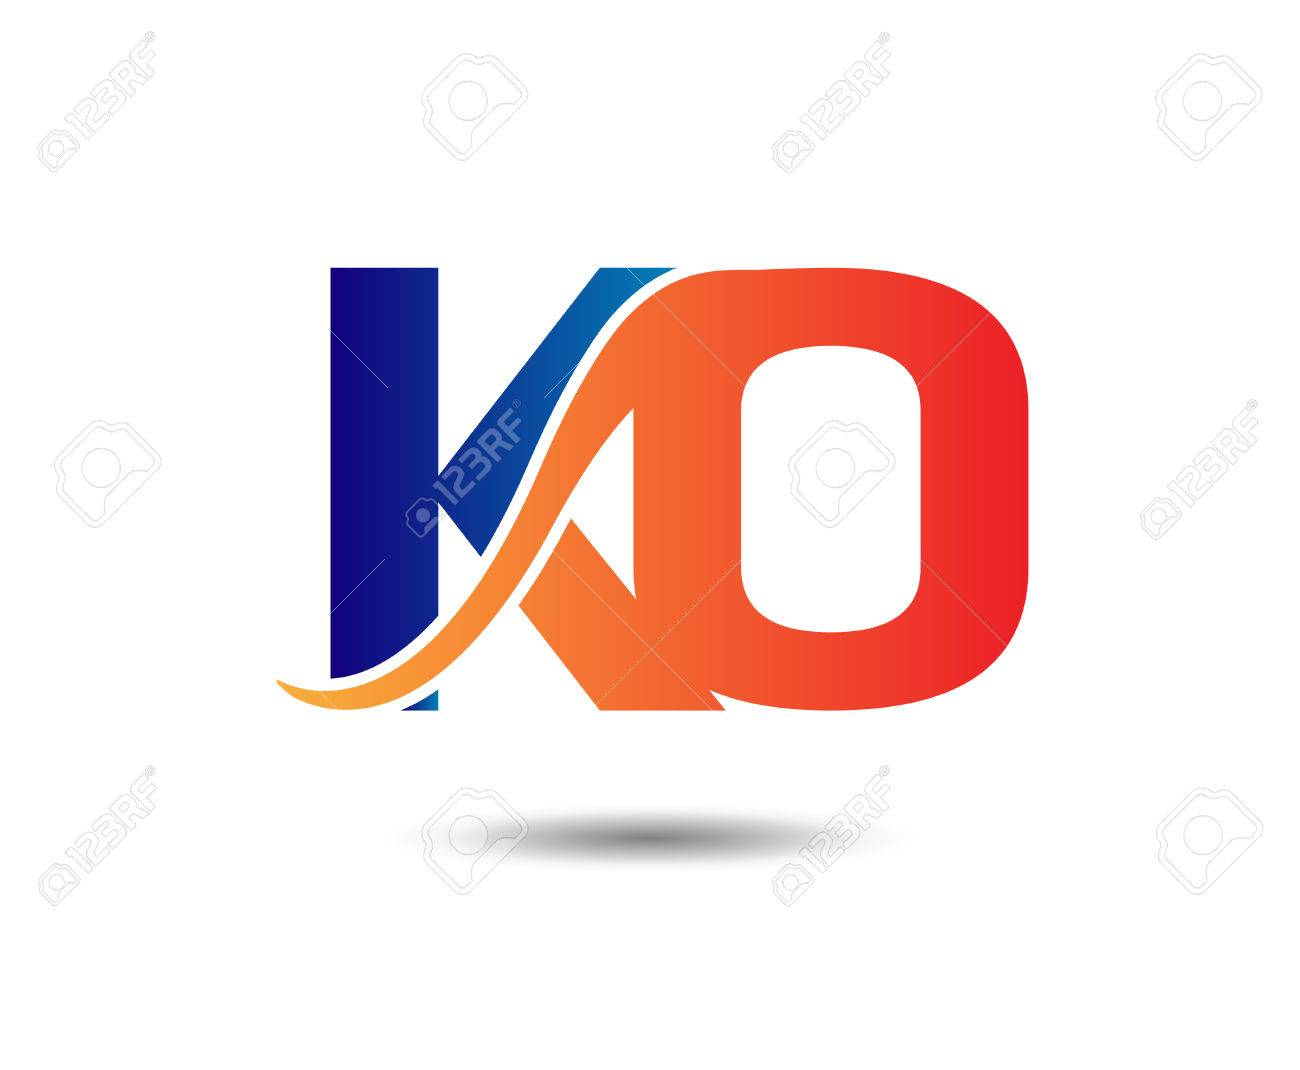 American airlines stock symbol images symbol and sign ideas ko stock symbol image collections symbol and sign ideas letter ko royalty free cliparts vectors and buycottarizona